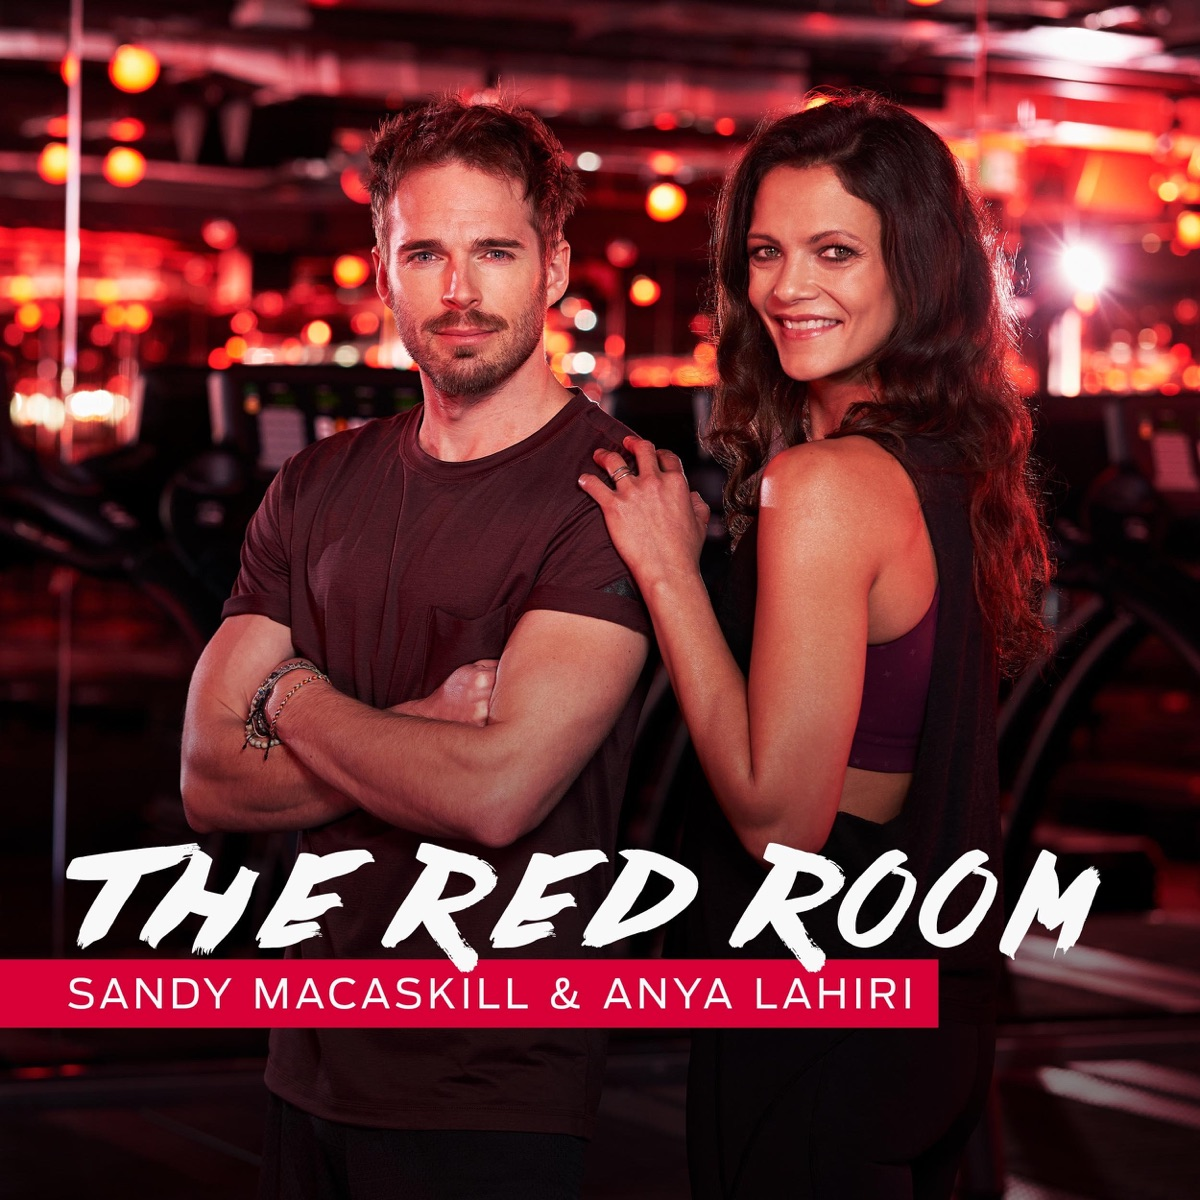 Introducing The Red Room